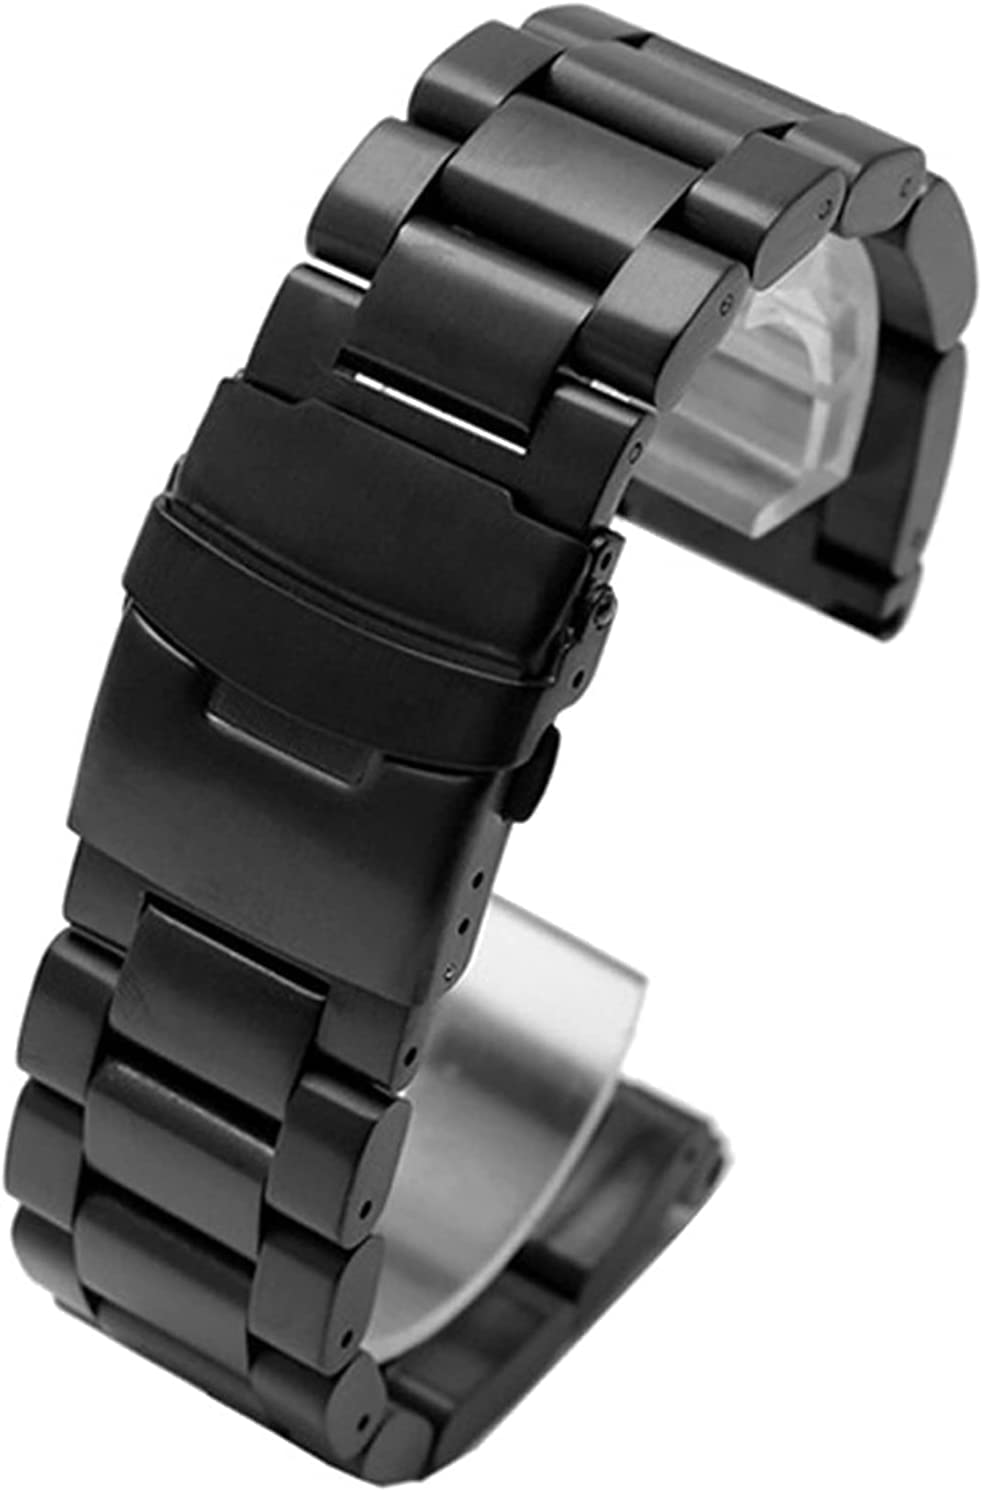 ZJSXIA Watch Strap gift Solid Stainless 22mm 24mm Max 71% OFF Steel 26mm Q